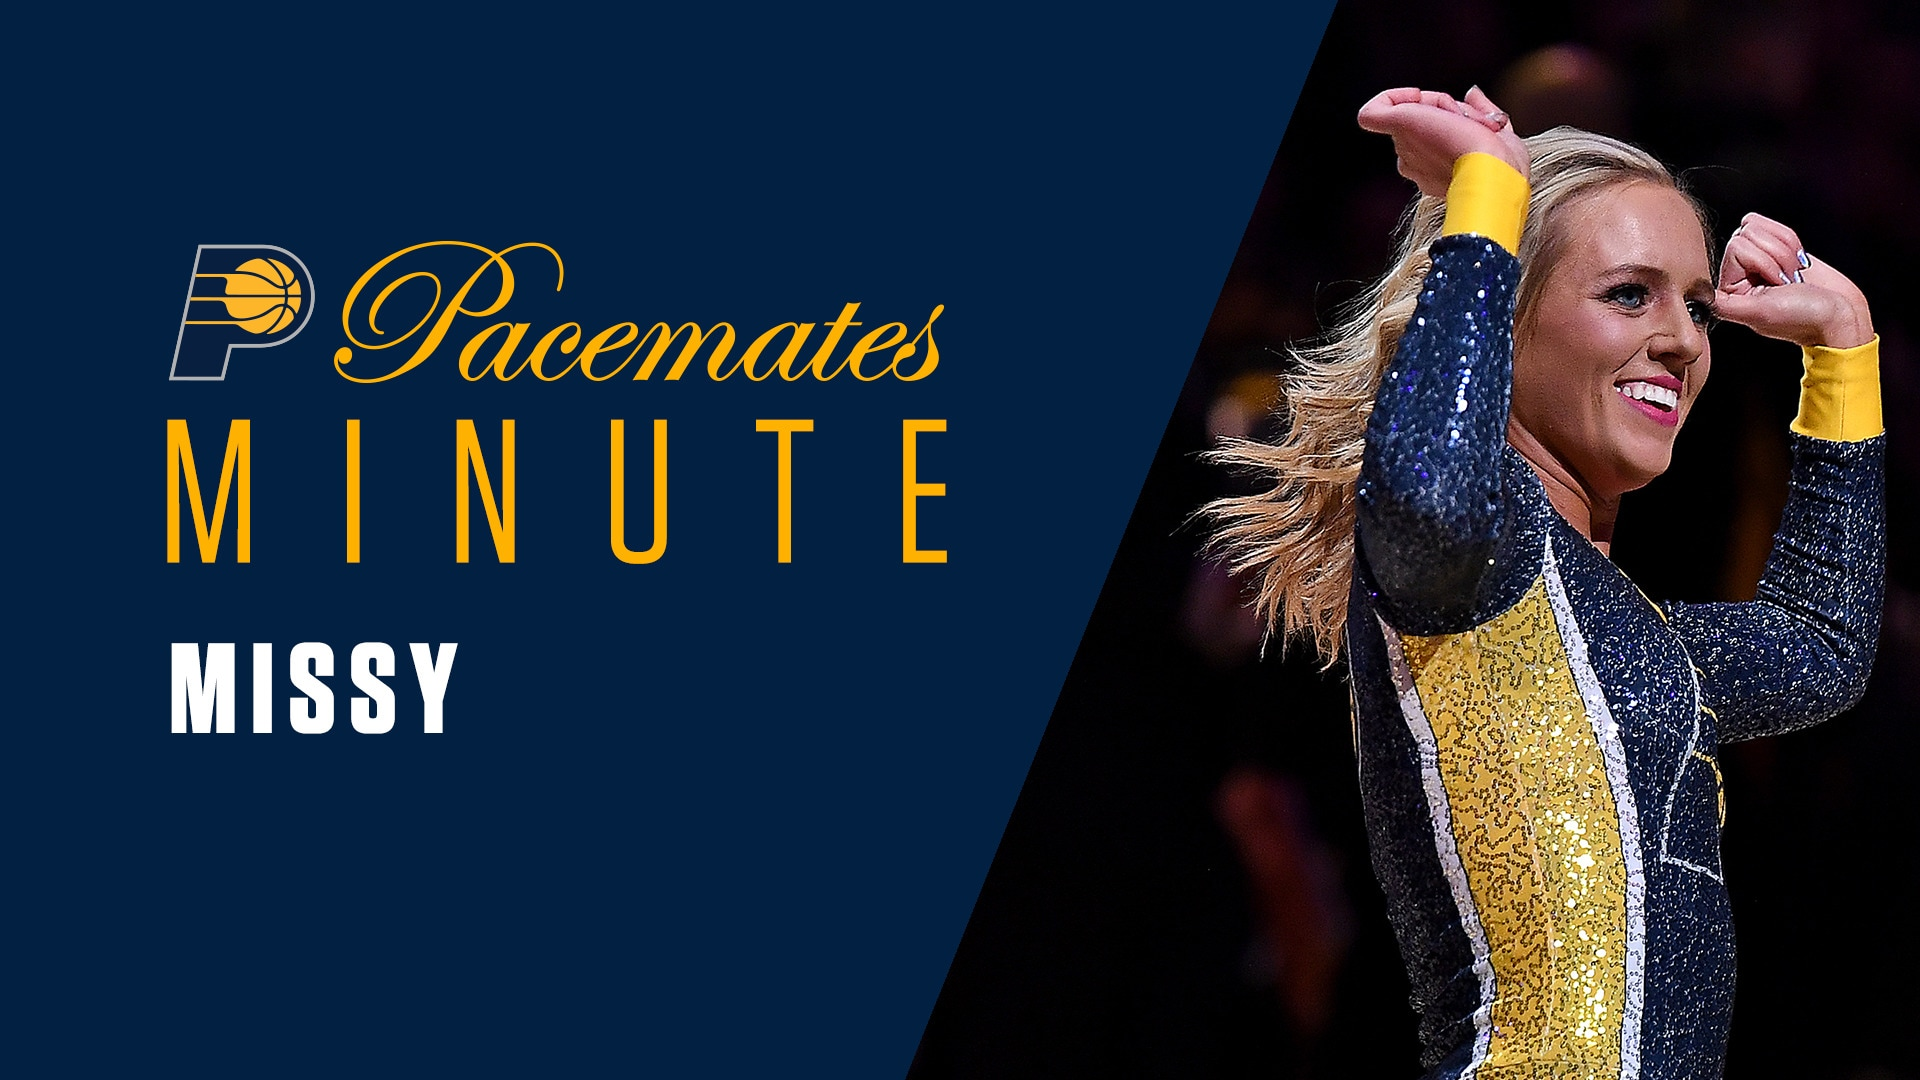 Pacemates Minute: Missy